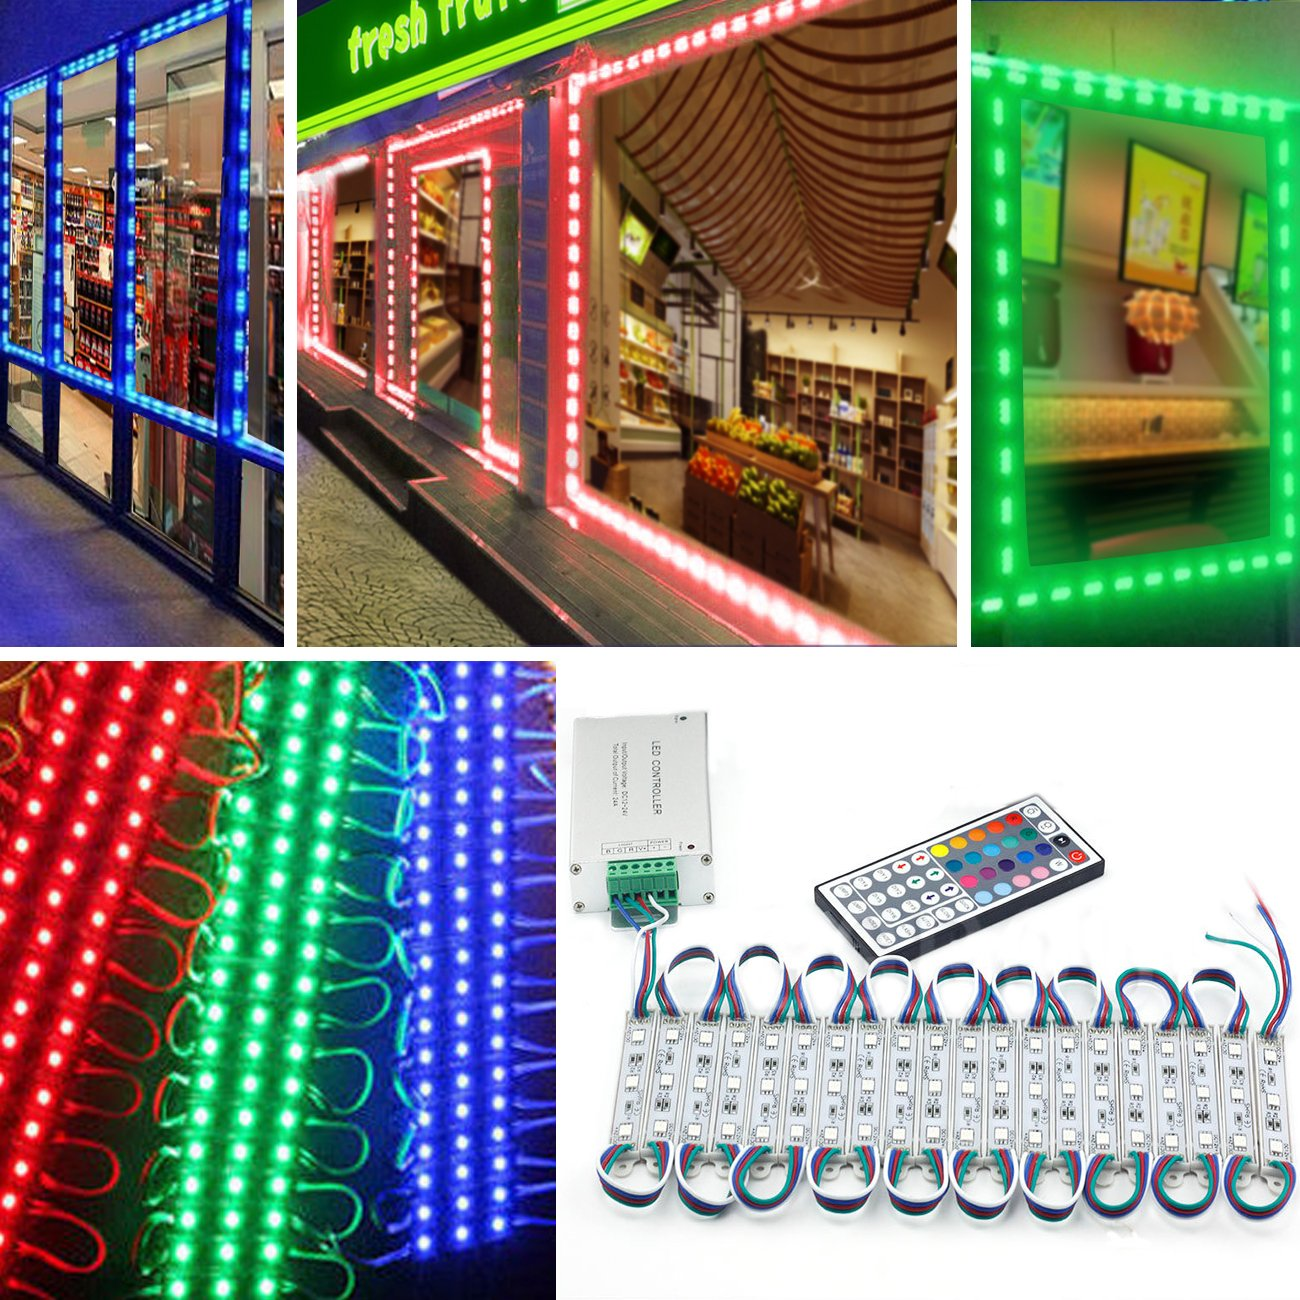 EAGWELL 20 Ft Storefront 40 Pieces RGB 5050 LED Light Module,2 Set 5050 SMD 120 LED Module Store Front Window Sign Strip Light by EAGWELL (Image #2)